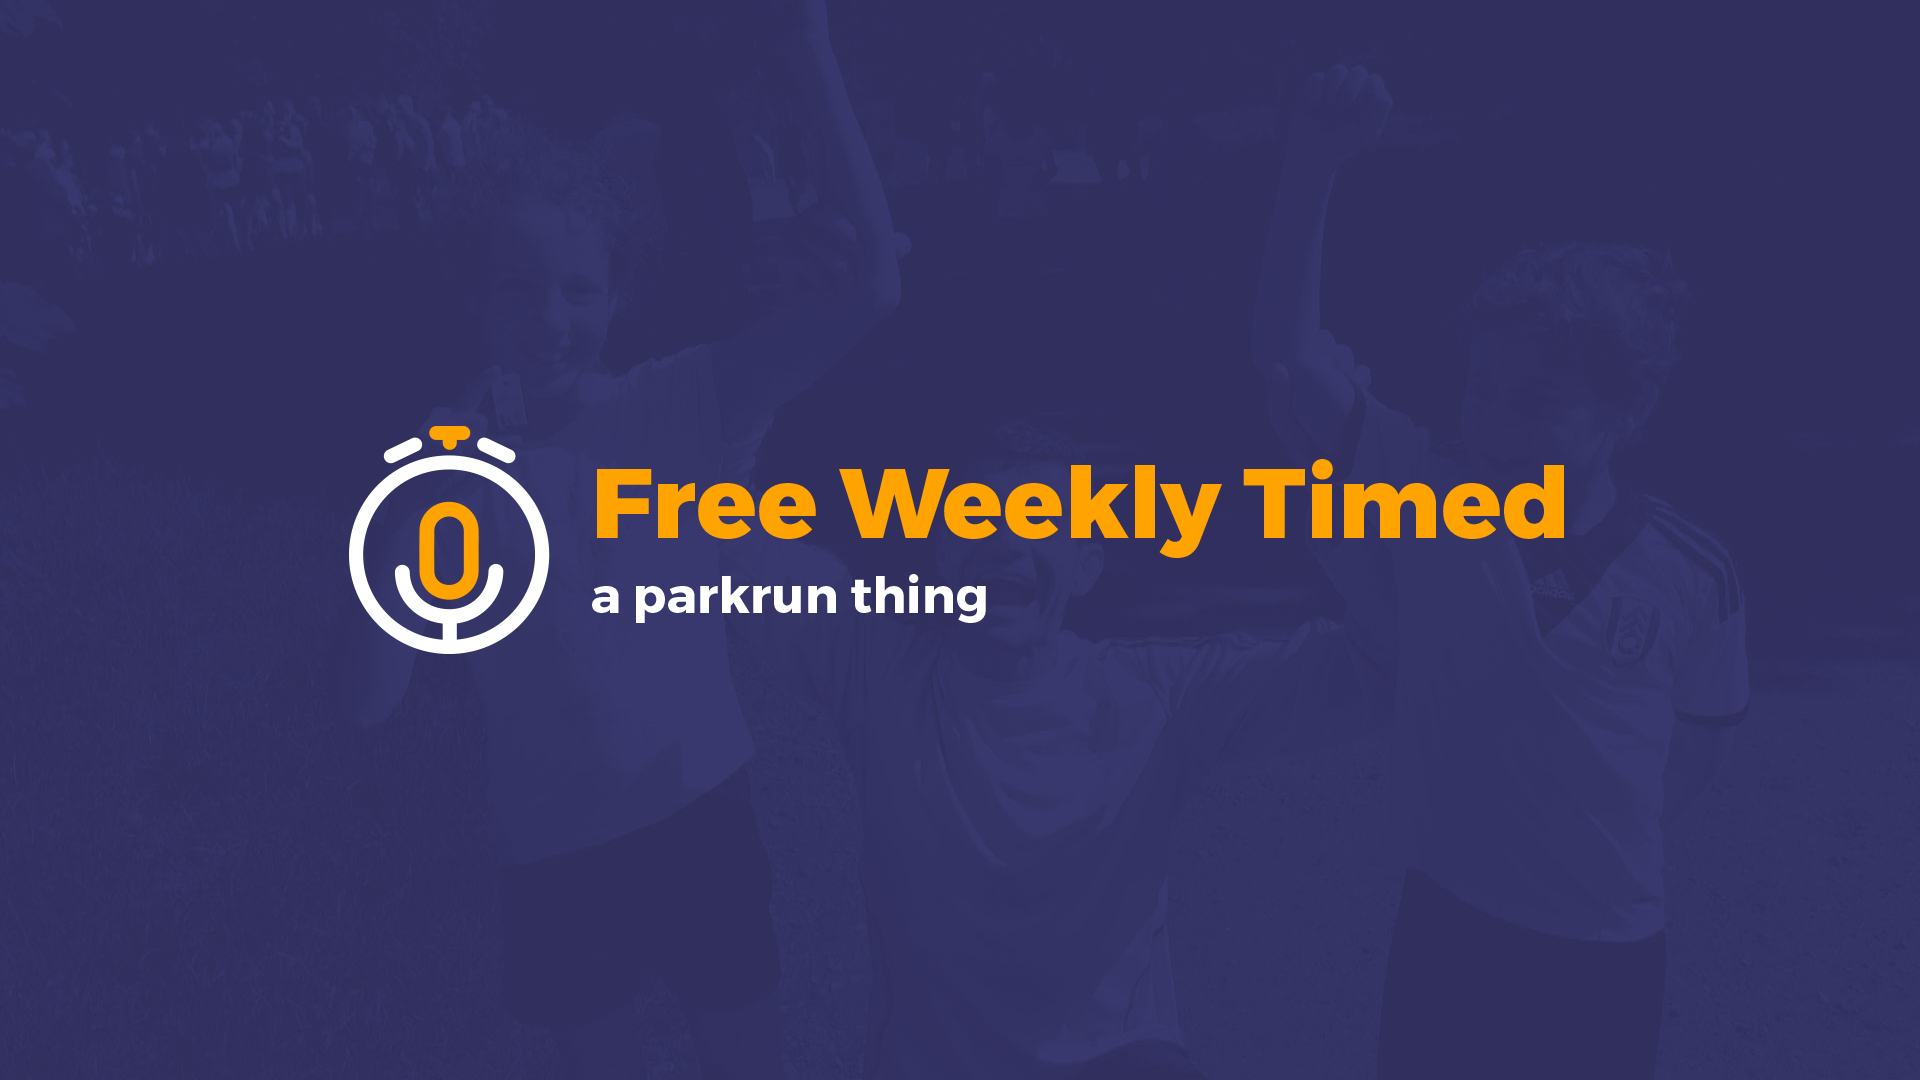 privacy policy free weekly timed